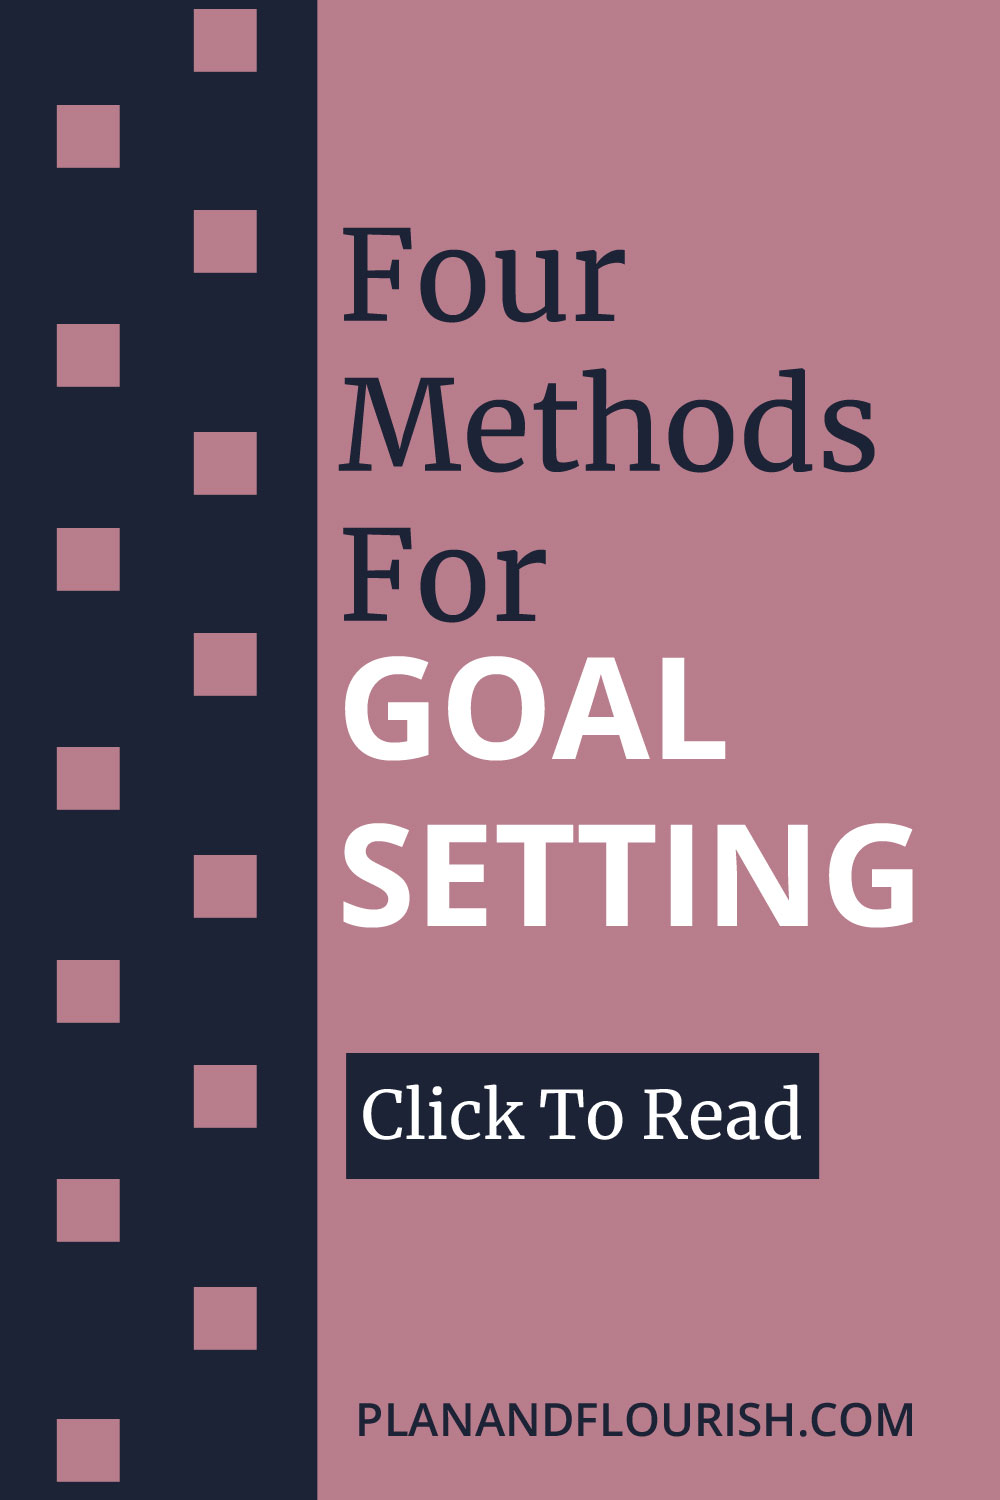 Four Methods For Goal Setting